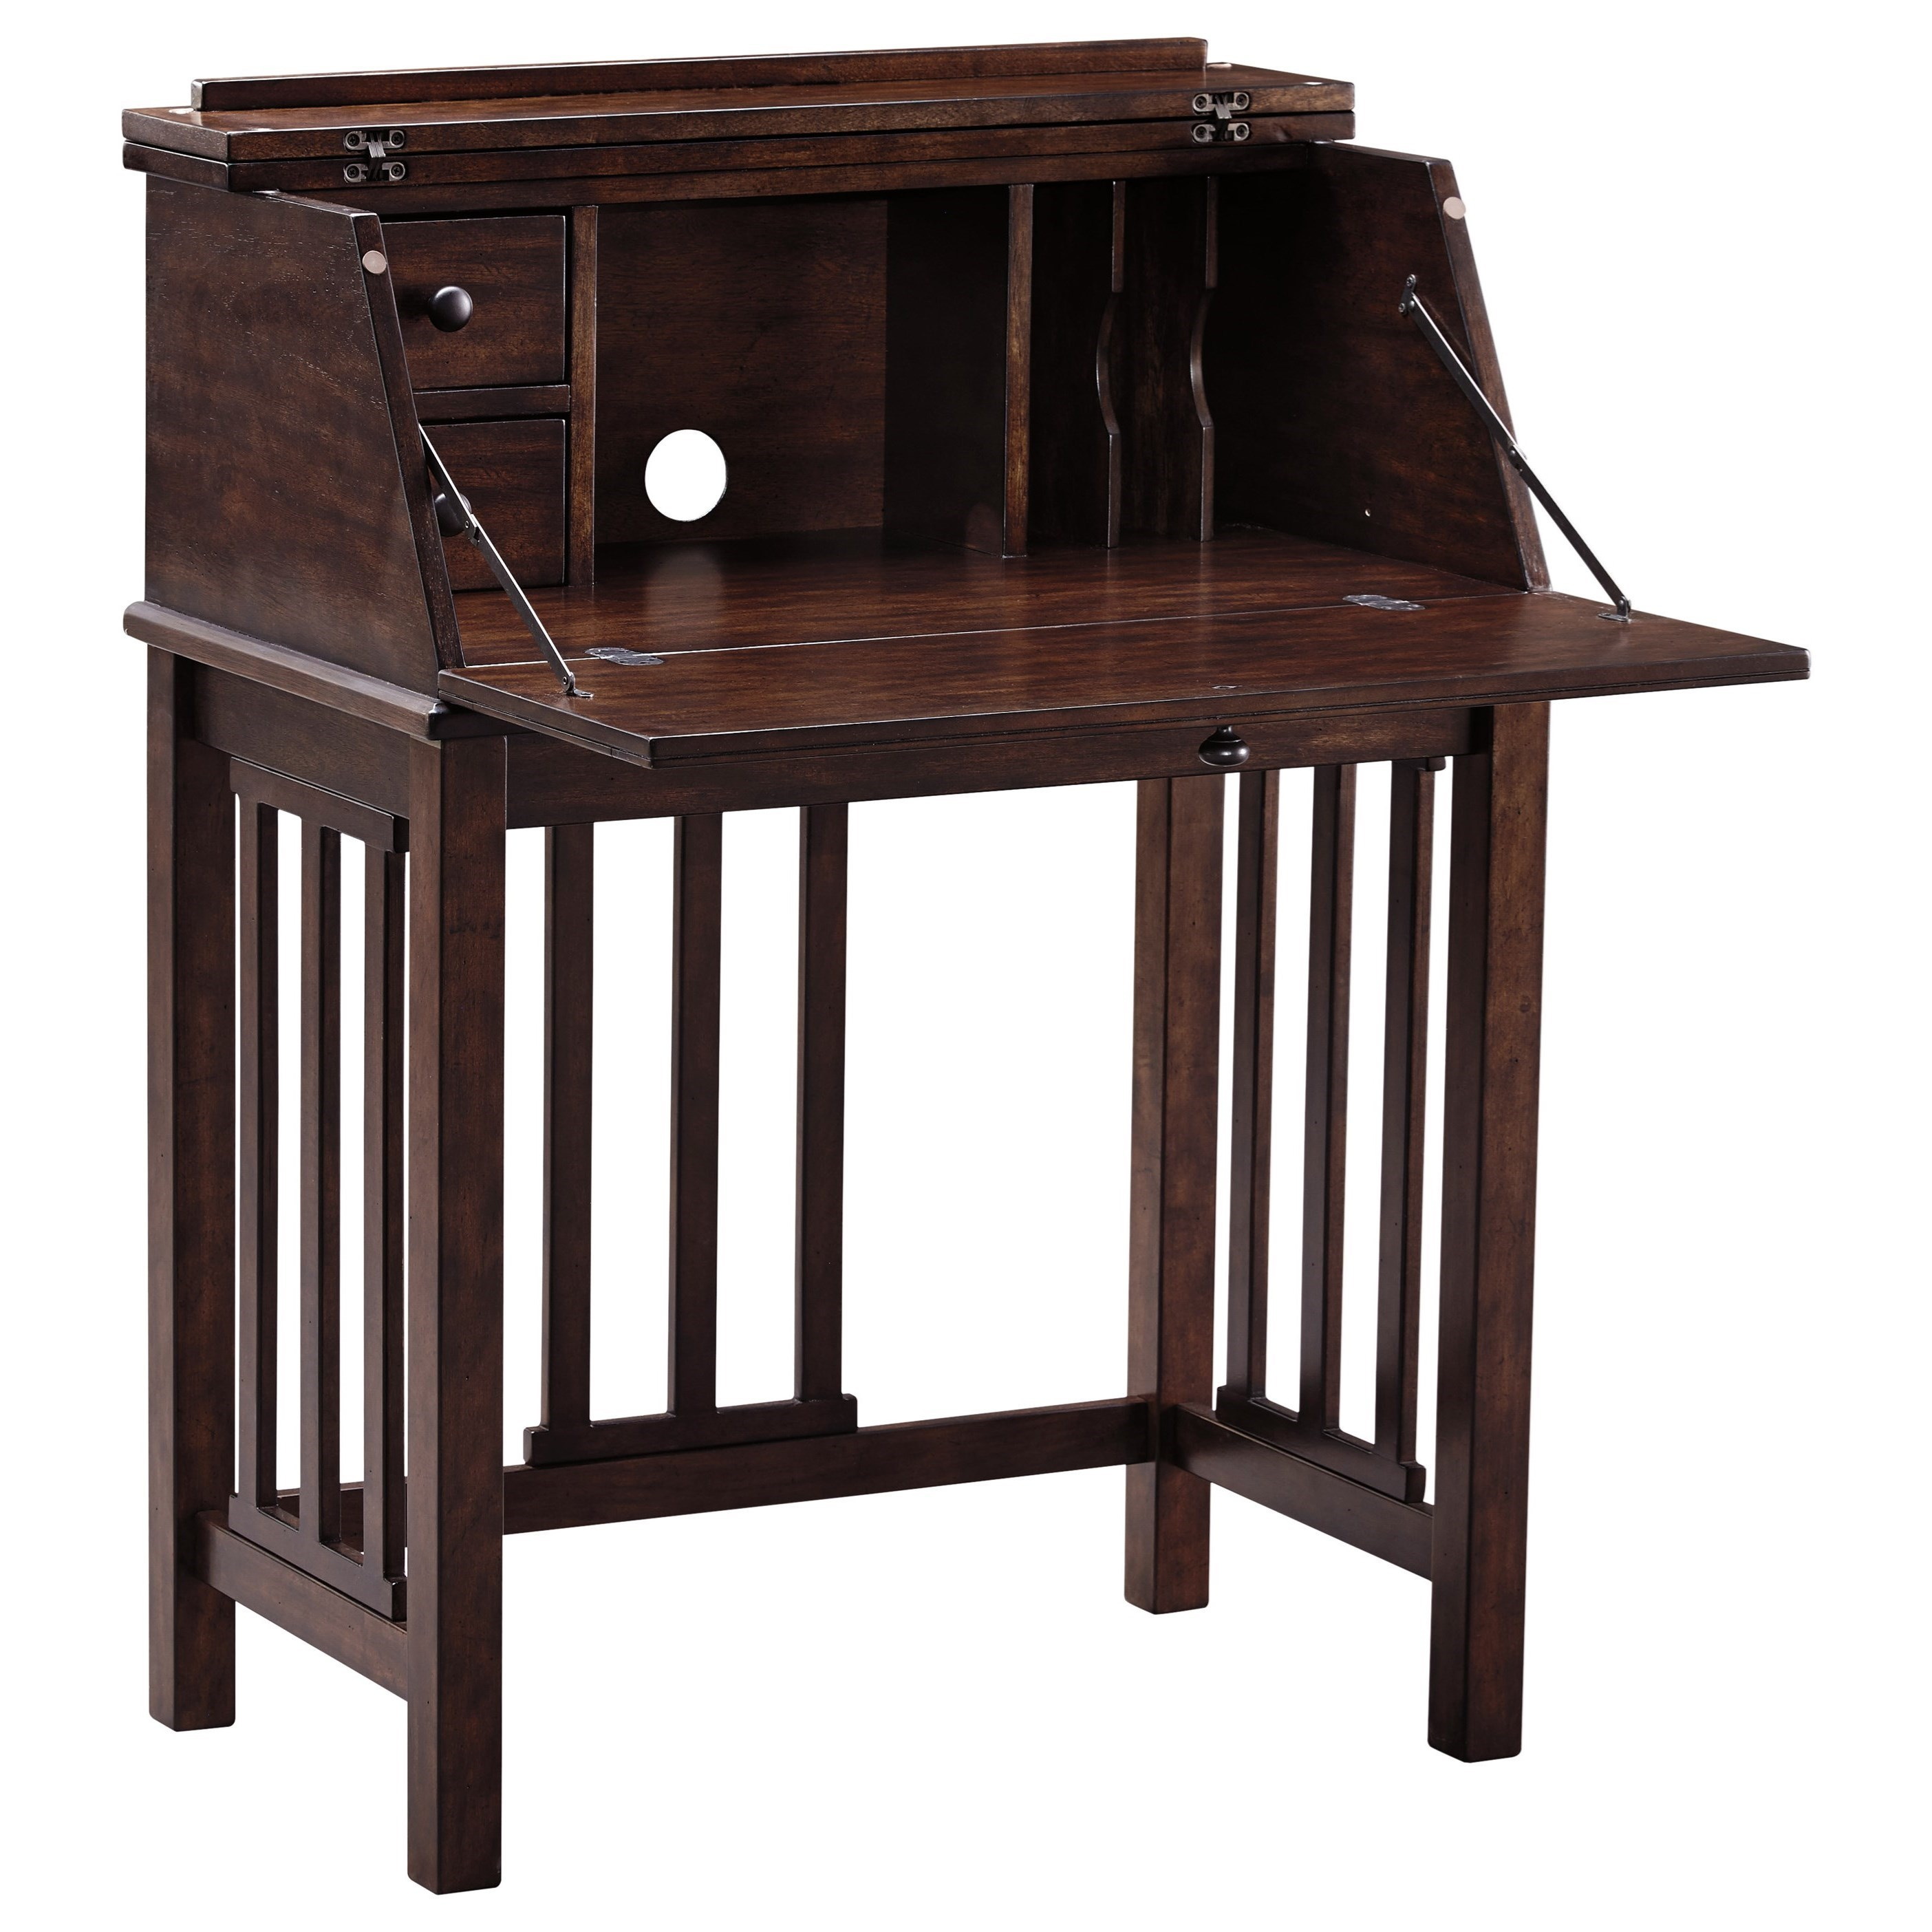 Harpan H797 19 Home Office Drop Front Desk With Mission Style Slats By  Signature Design By Ashley